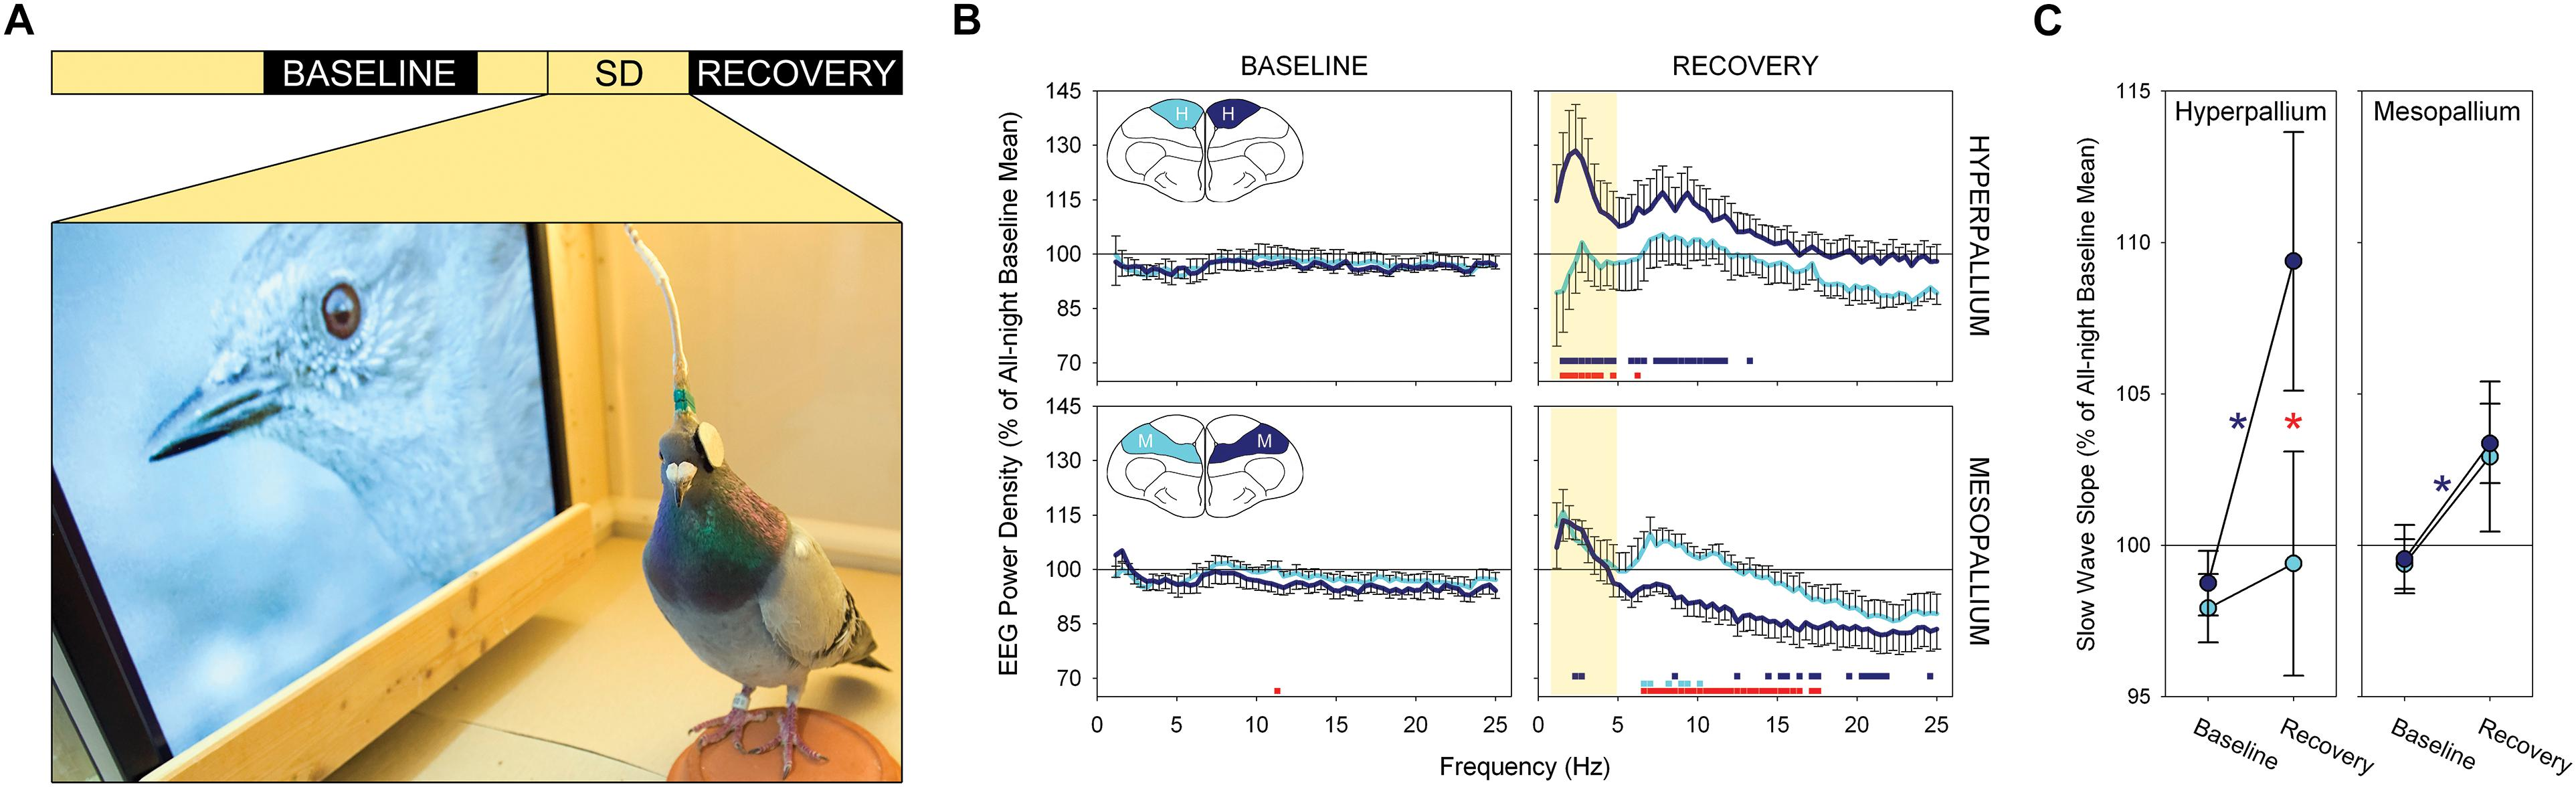 Frontiers | Local Aspects of Avian Non-REM and REM Sleep